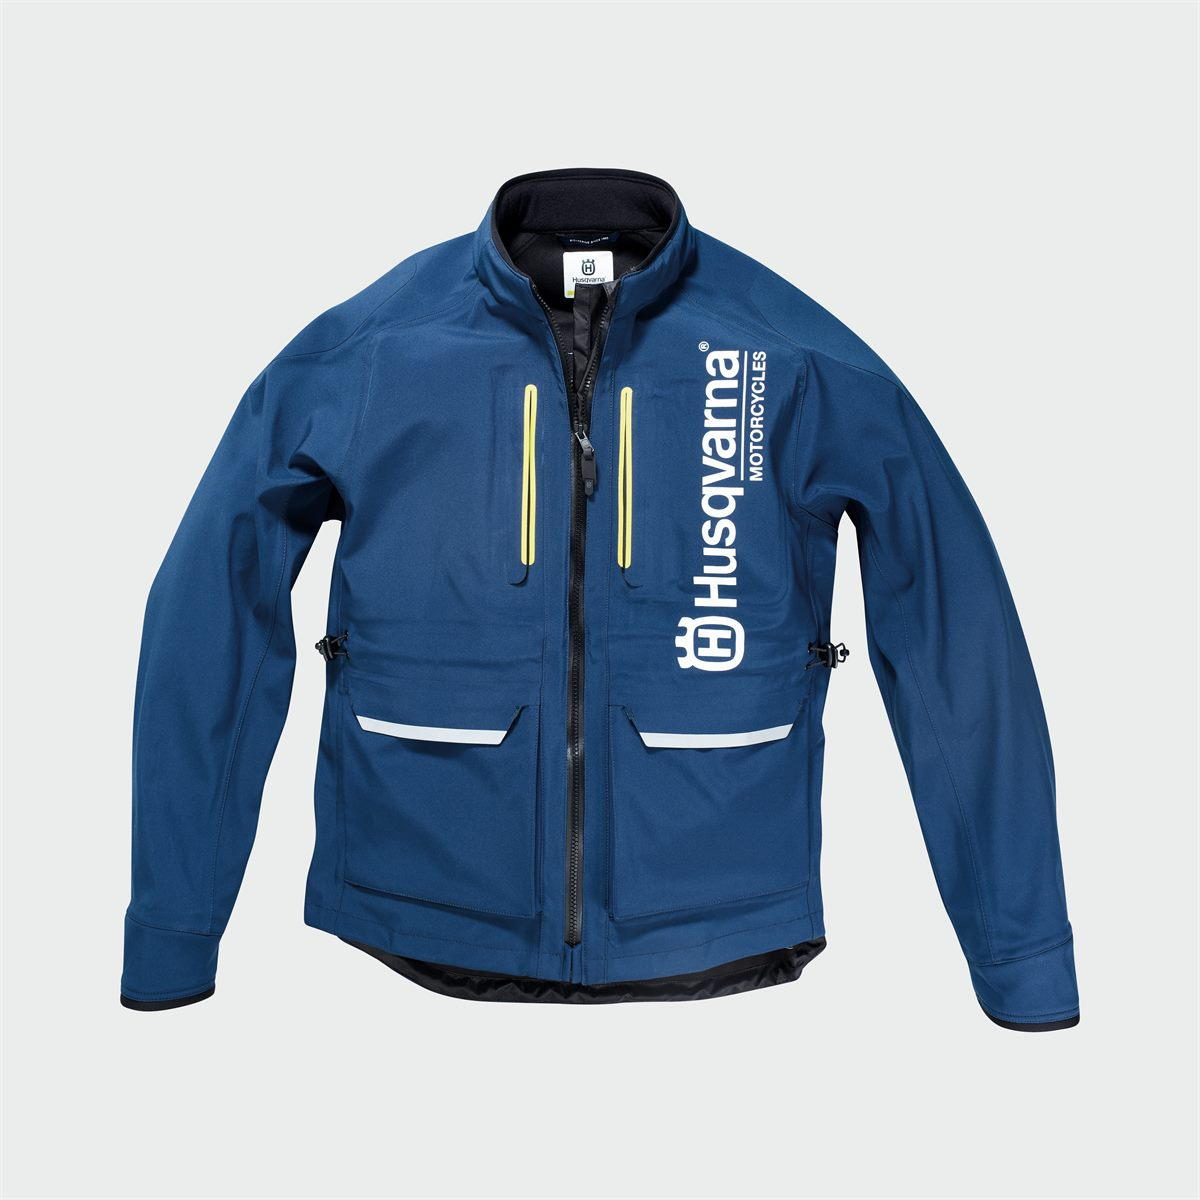 Husqvarna Motorcycles 2020 Functional Clothing Offroad Collection - GOTLAND WP JACKET